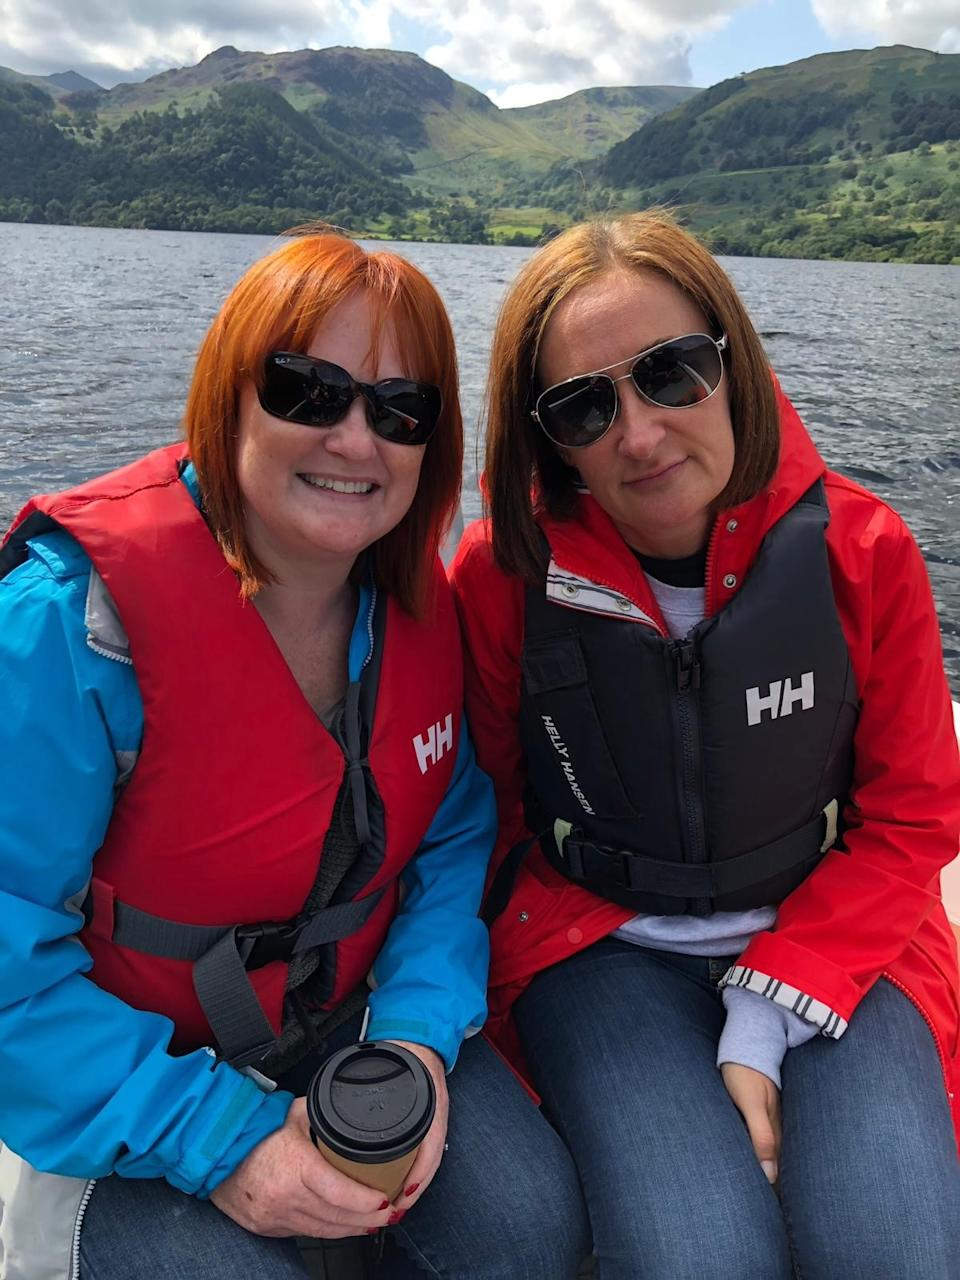 Helen Hughes' sister (right) is also an end-of-life care volunteer. Both sisters were inspired to volunteer following the wonderful care their father received after suffering a stroke. (Supplied)